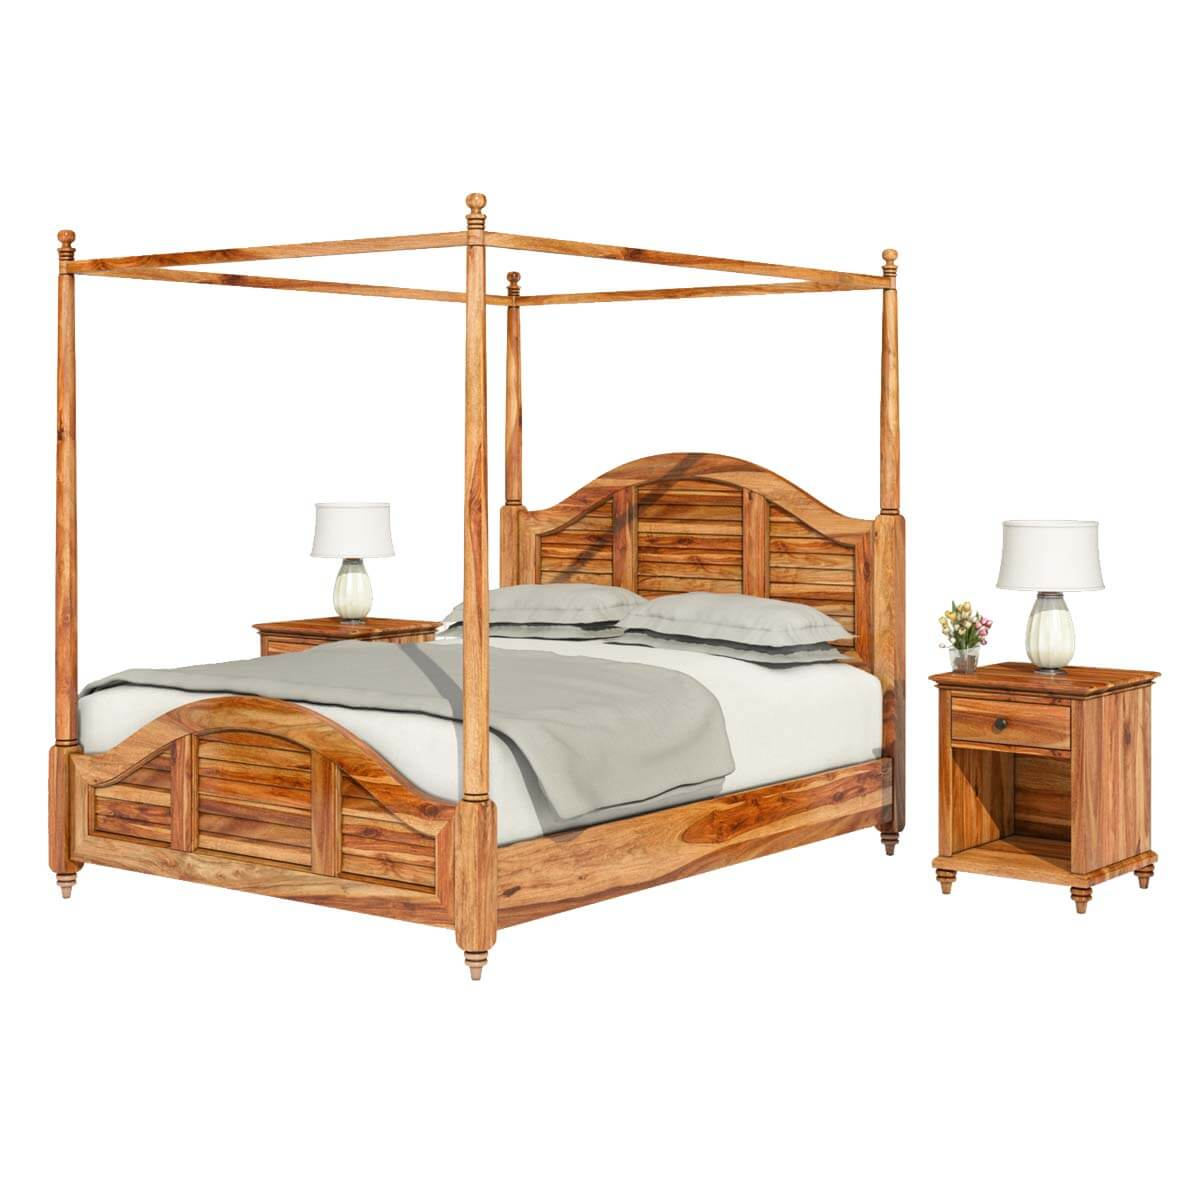 Livingston Handcrafted California King Size Solid Wood